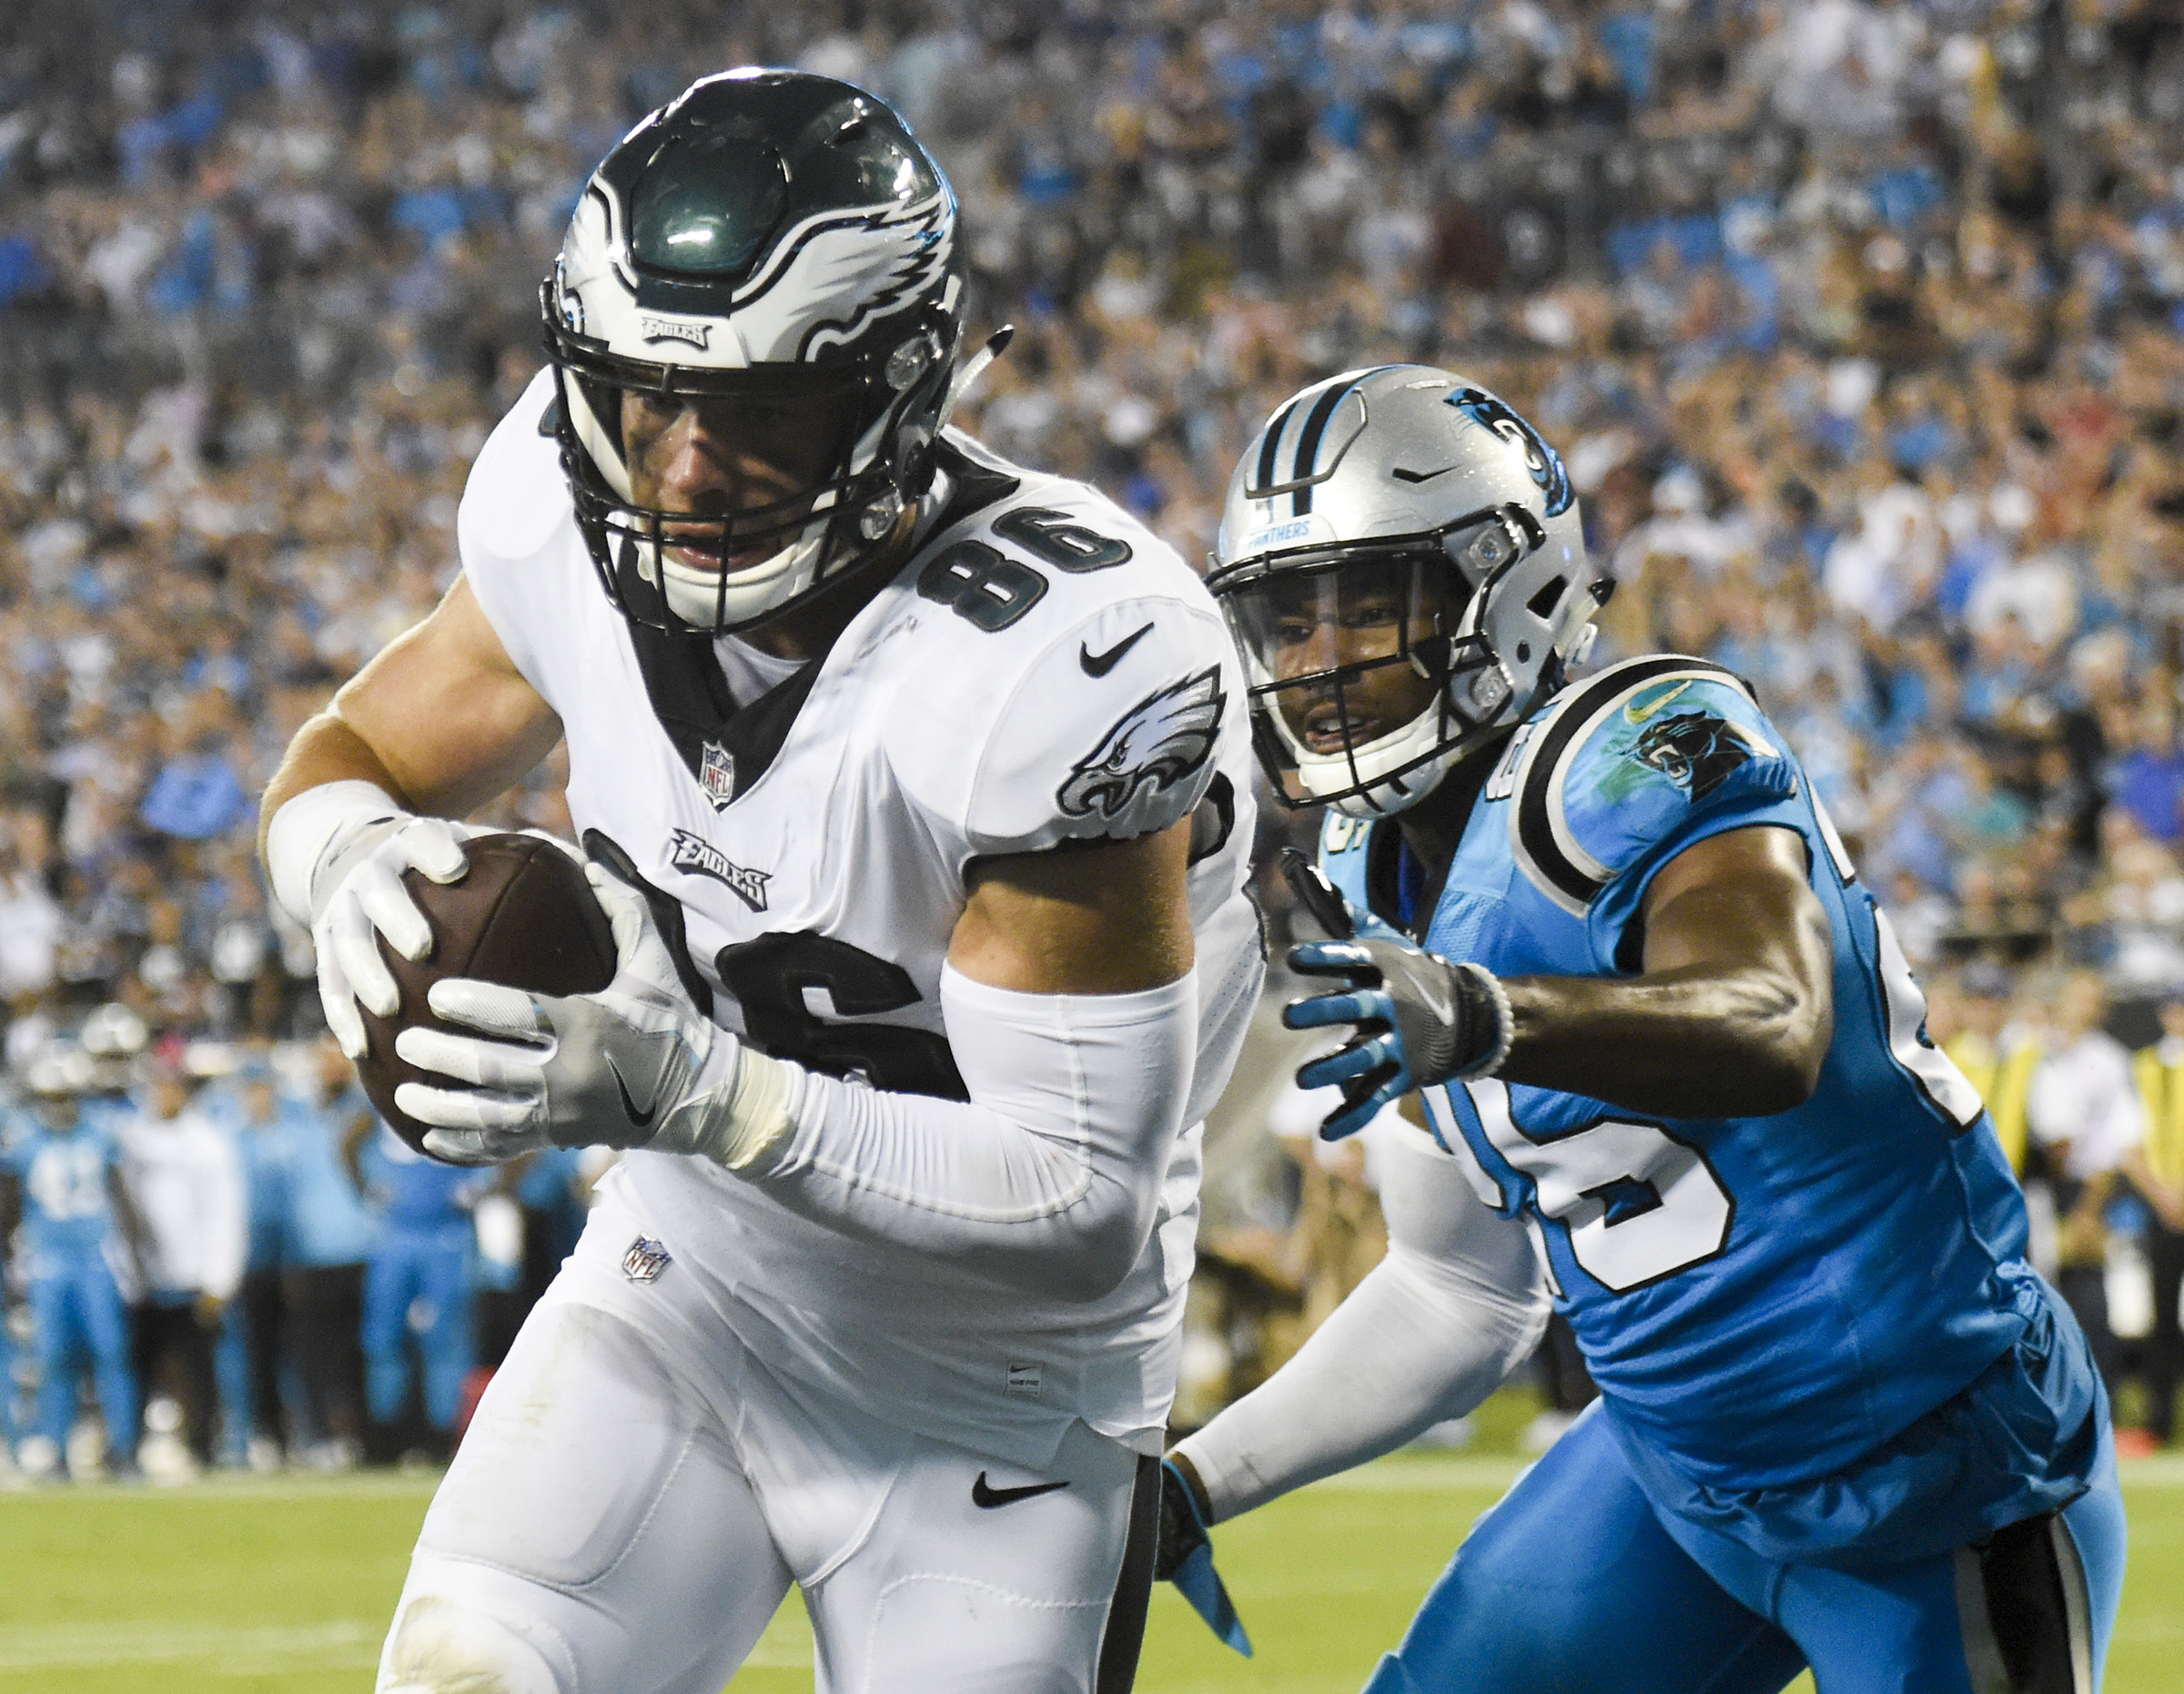 Eagles tight end Zach Ertz caught two touchdowns, one against new teammate Daryl Worley, in the Eagles´ 28-23 victory over the Carolina Panthers in October.